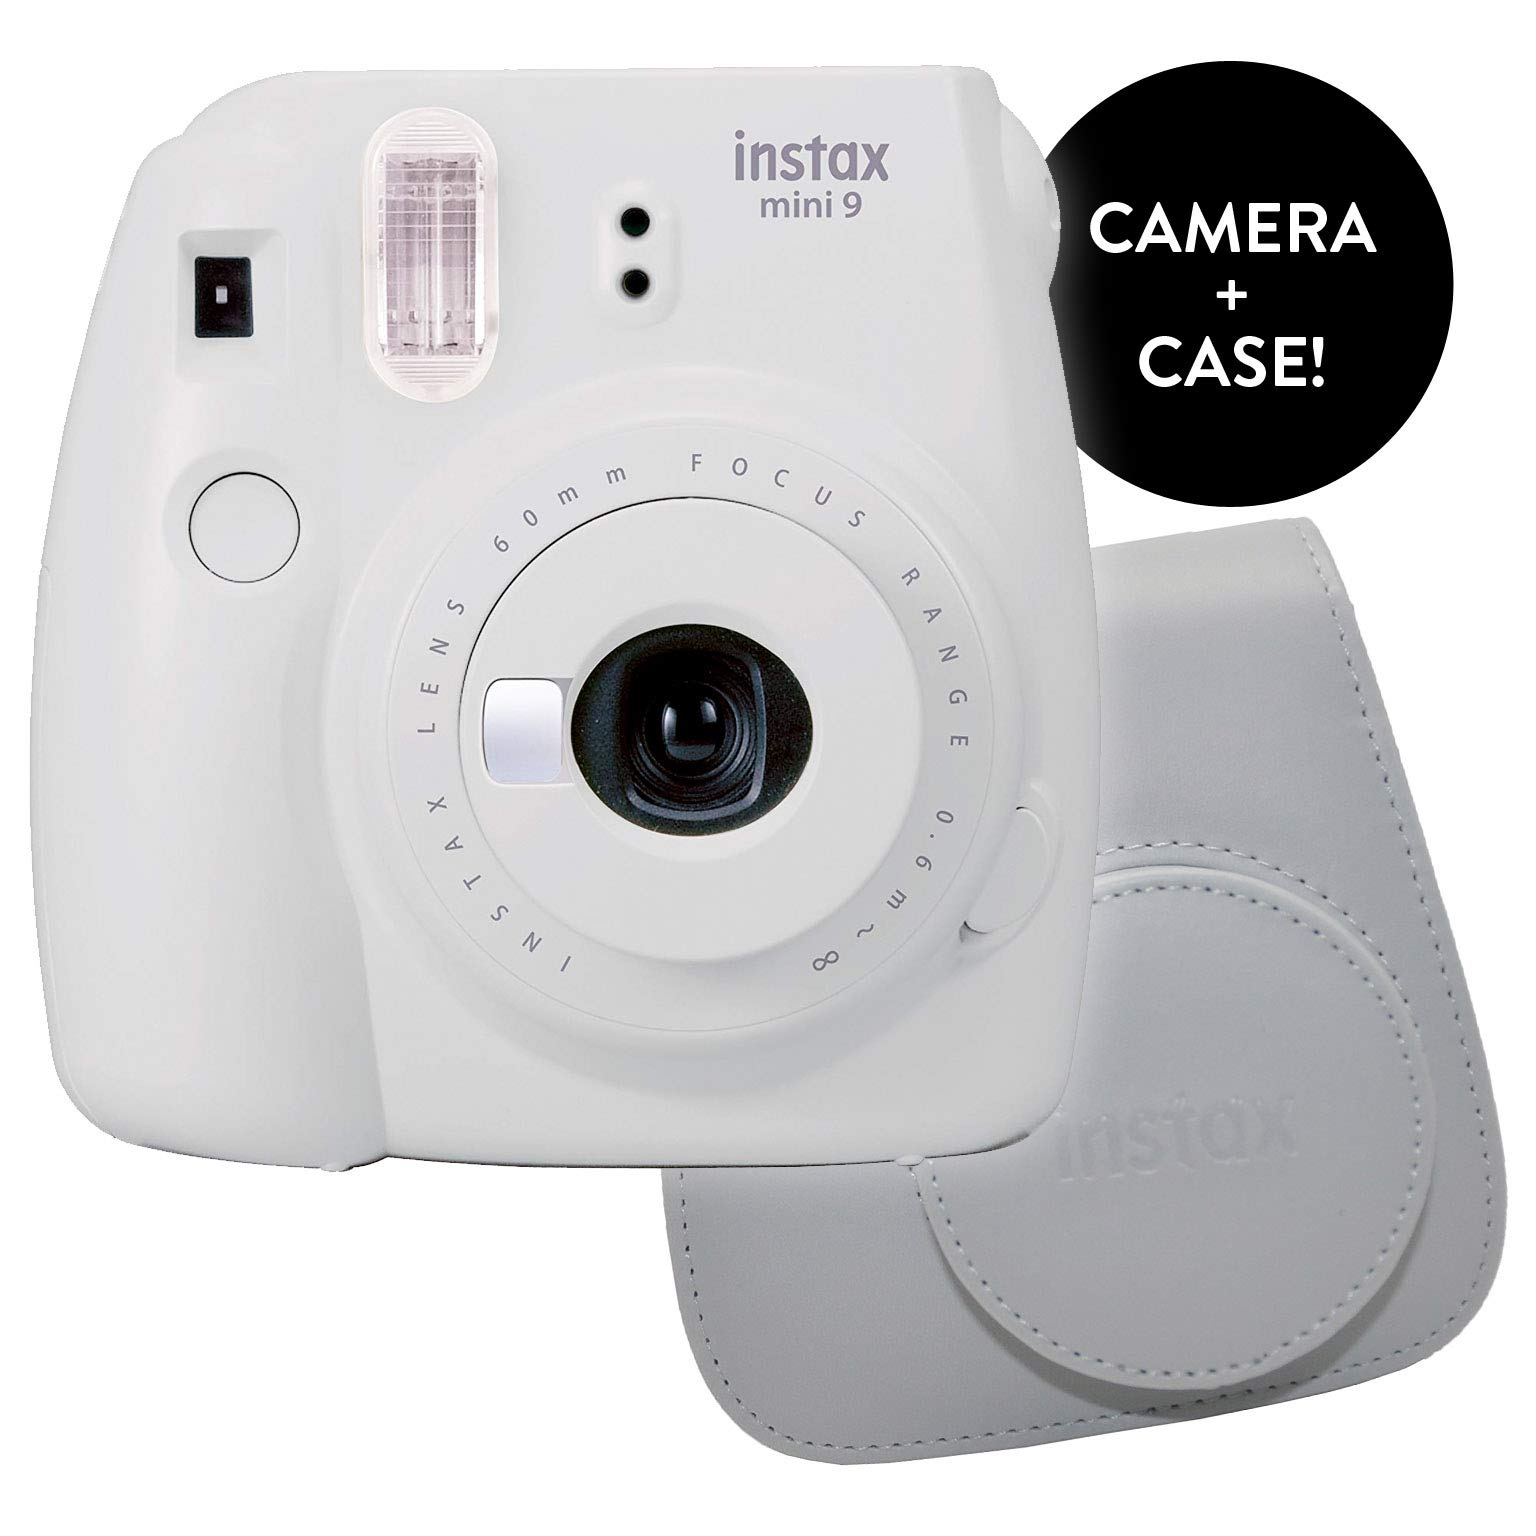 Fujifilm Instax Mini 9 Instant Camera - Renewed with New Instax Mini 9 Groovy Camera Case | Matching Colors for Case and Mini 9 Camera + Amazing Cleaning Cloth (Smokey White)